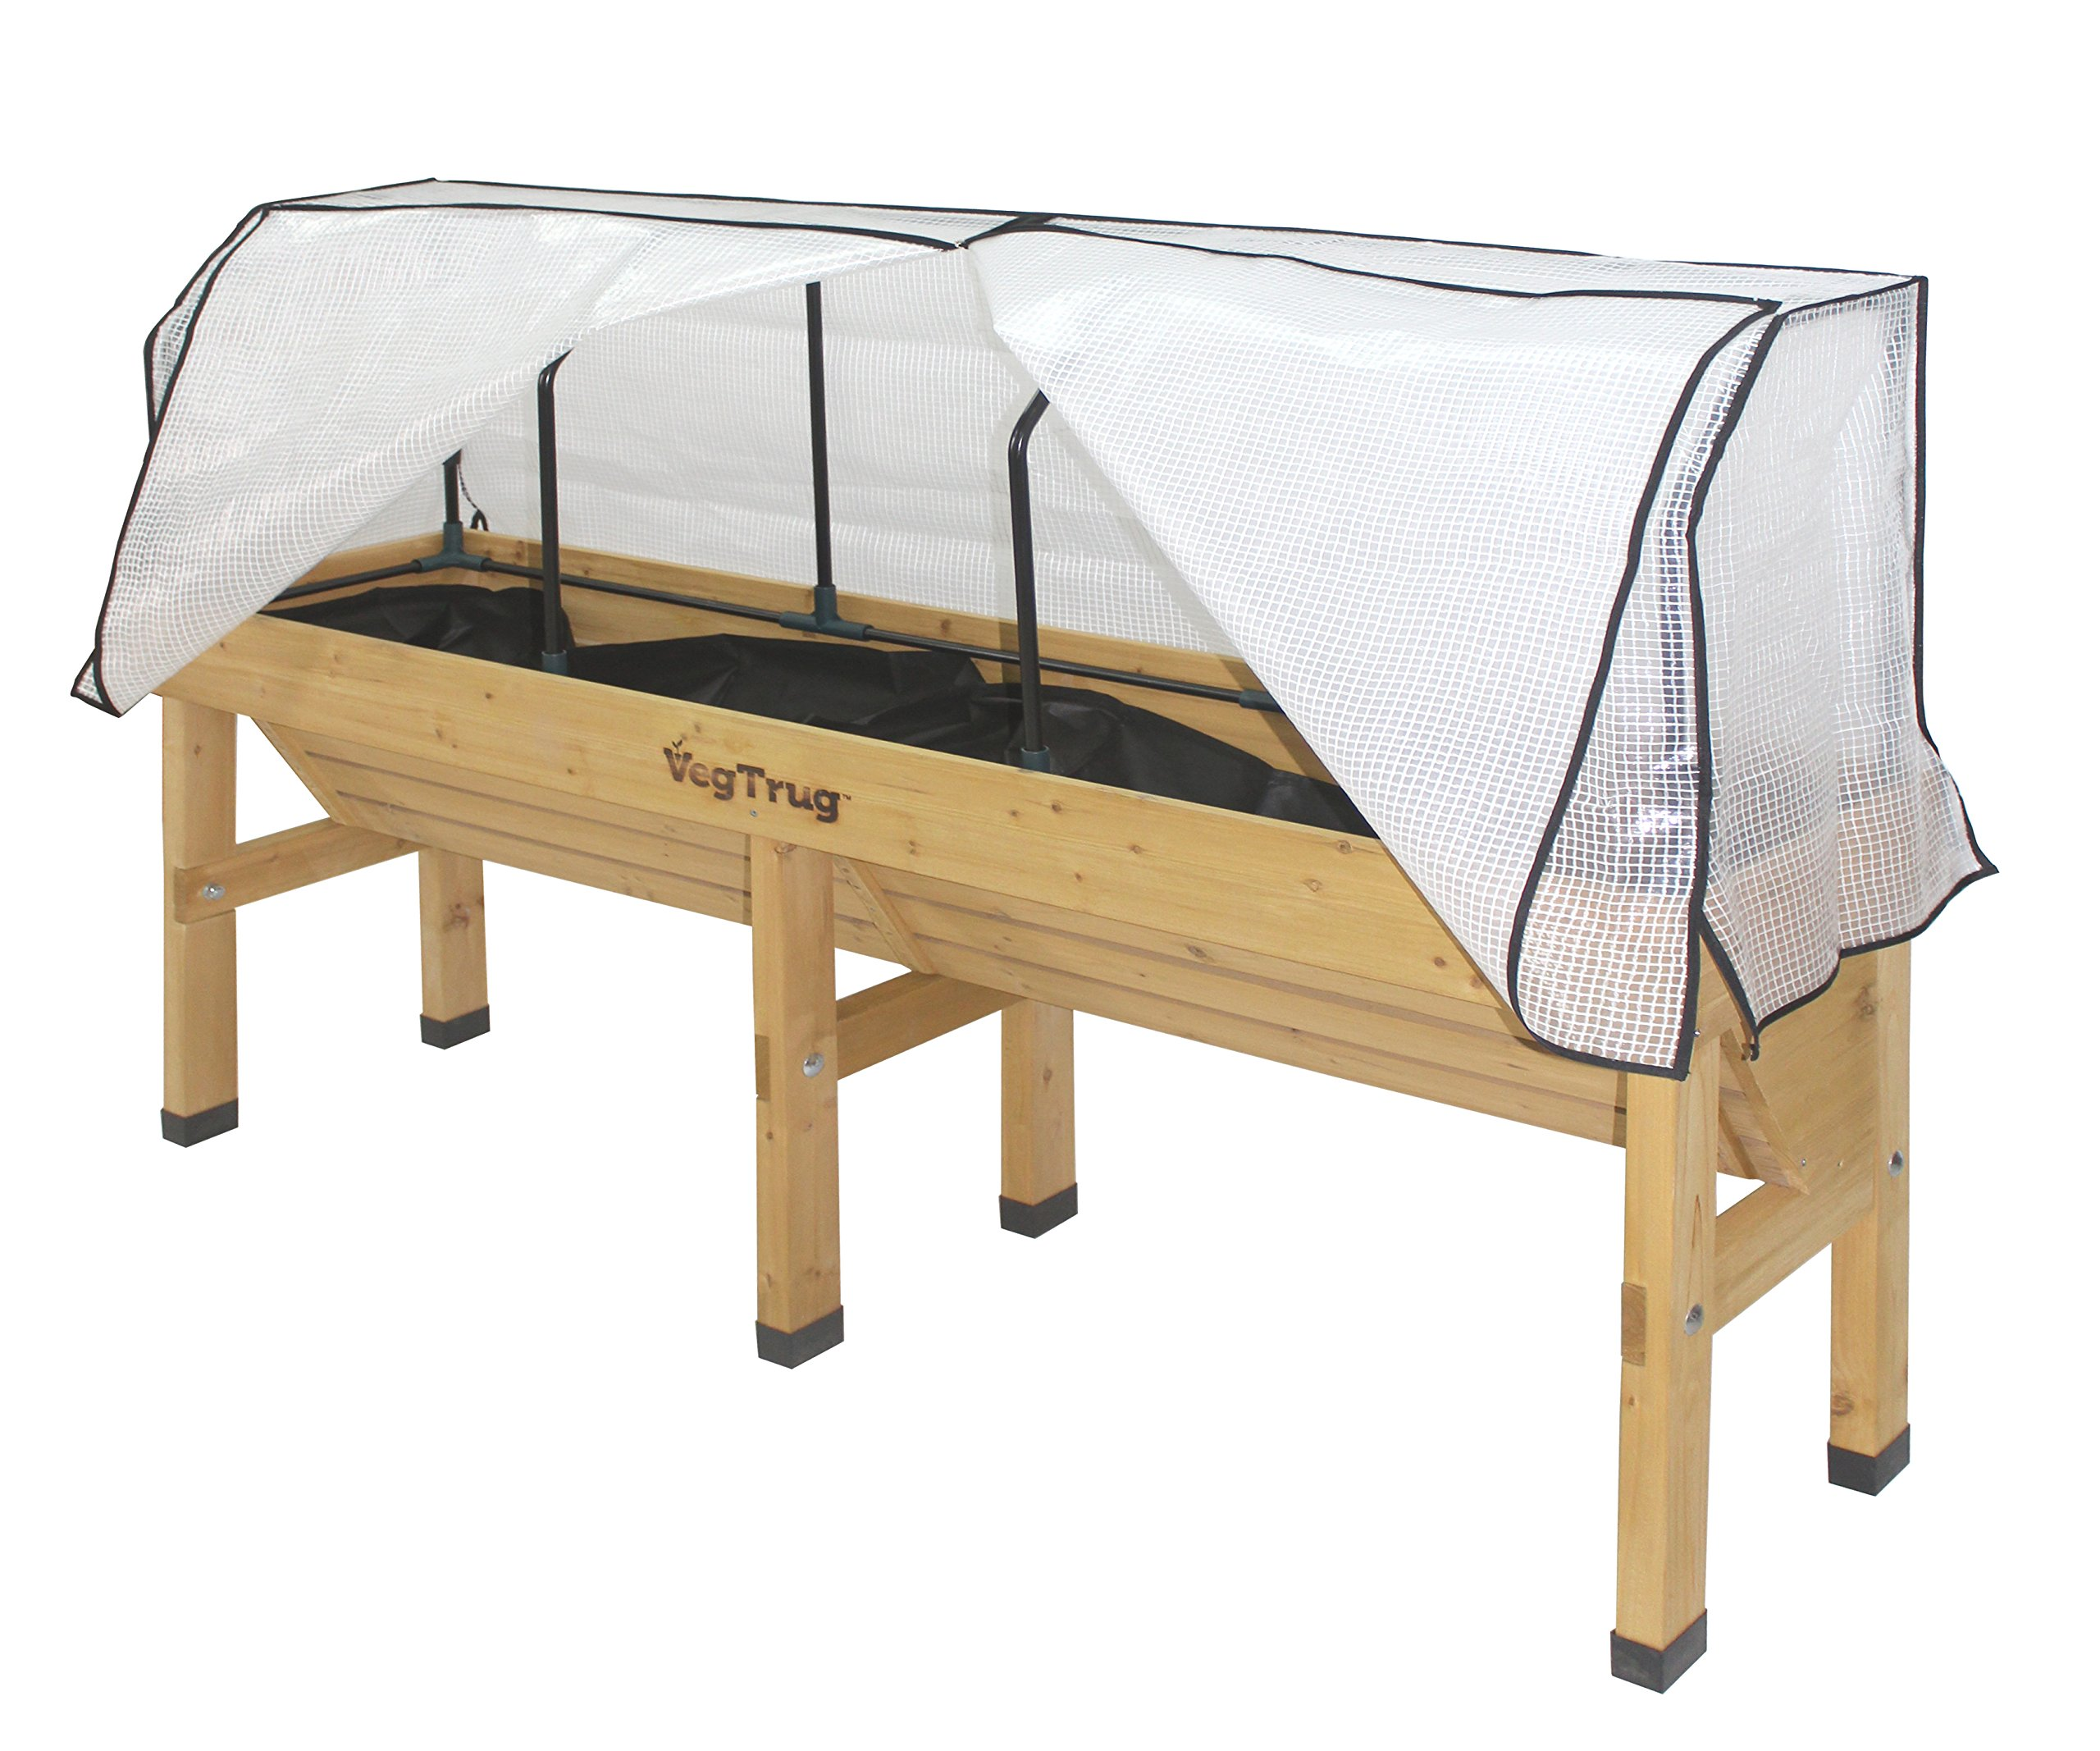 Vegtrug MGFPE1144 USA Medium Greenhouse Frame and PE Cover